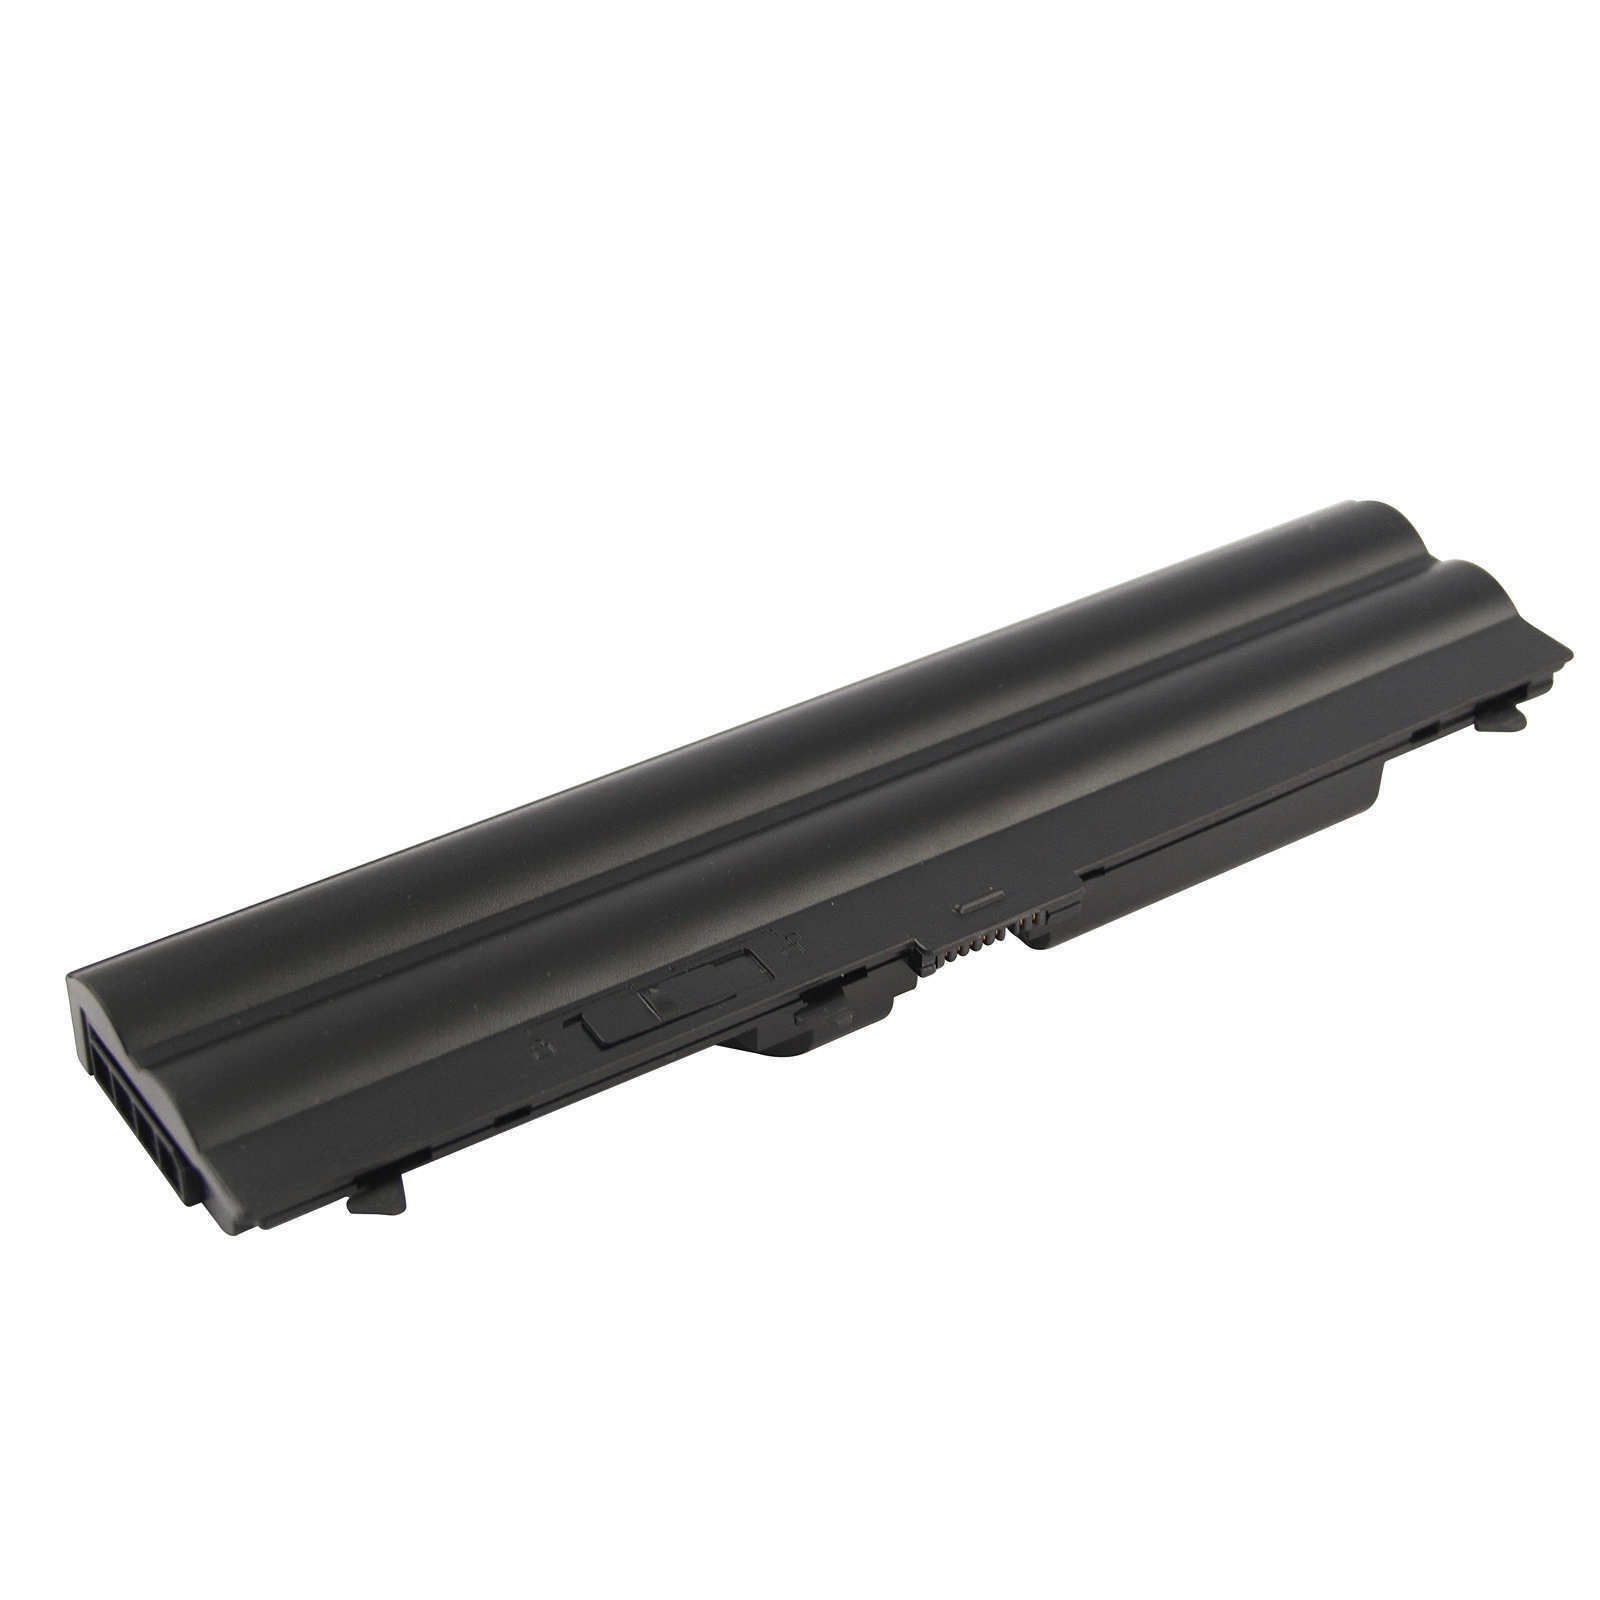 Lenovo 05787UJ ThinkPad Edge Lithium-Ion Battery